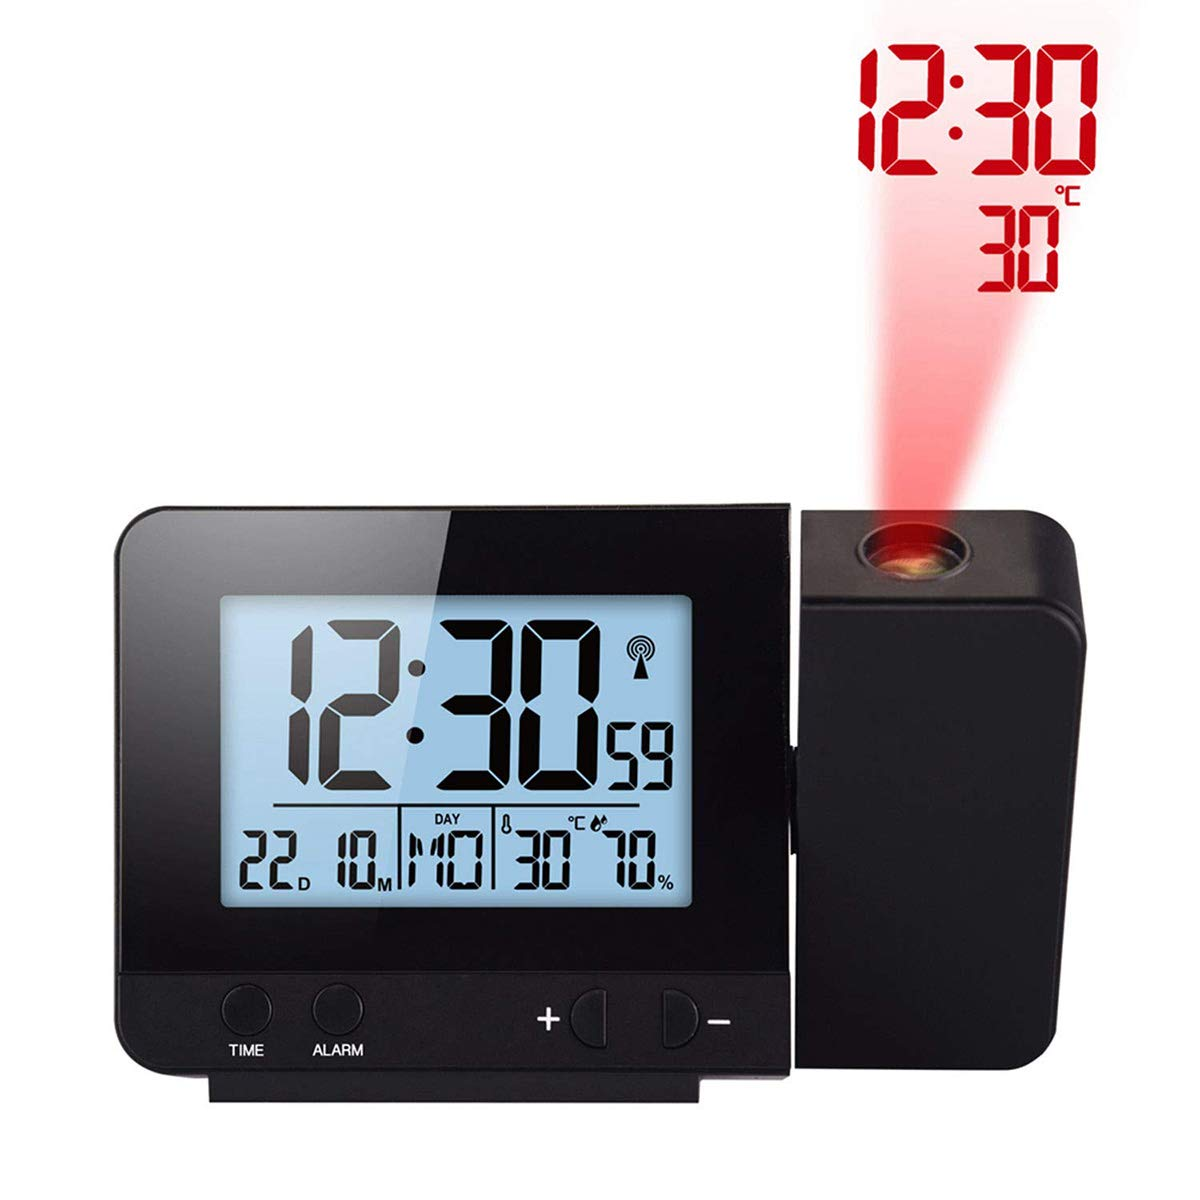 Uhruolo Digital Projection Clock, 180 Degree Adjustable Projection 4 Backlights with USB Charging Port, LCD Display Date Time Temperature Humidity, 12/24 Hours, 2 Snooze Clocks,Black by Uhruolo